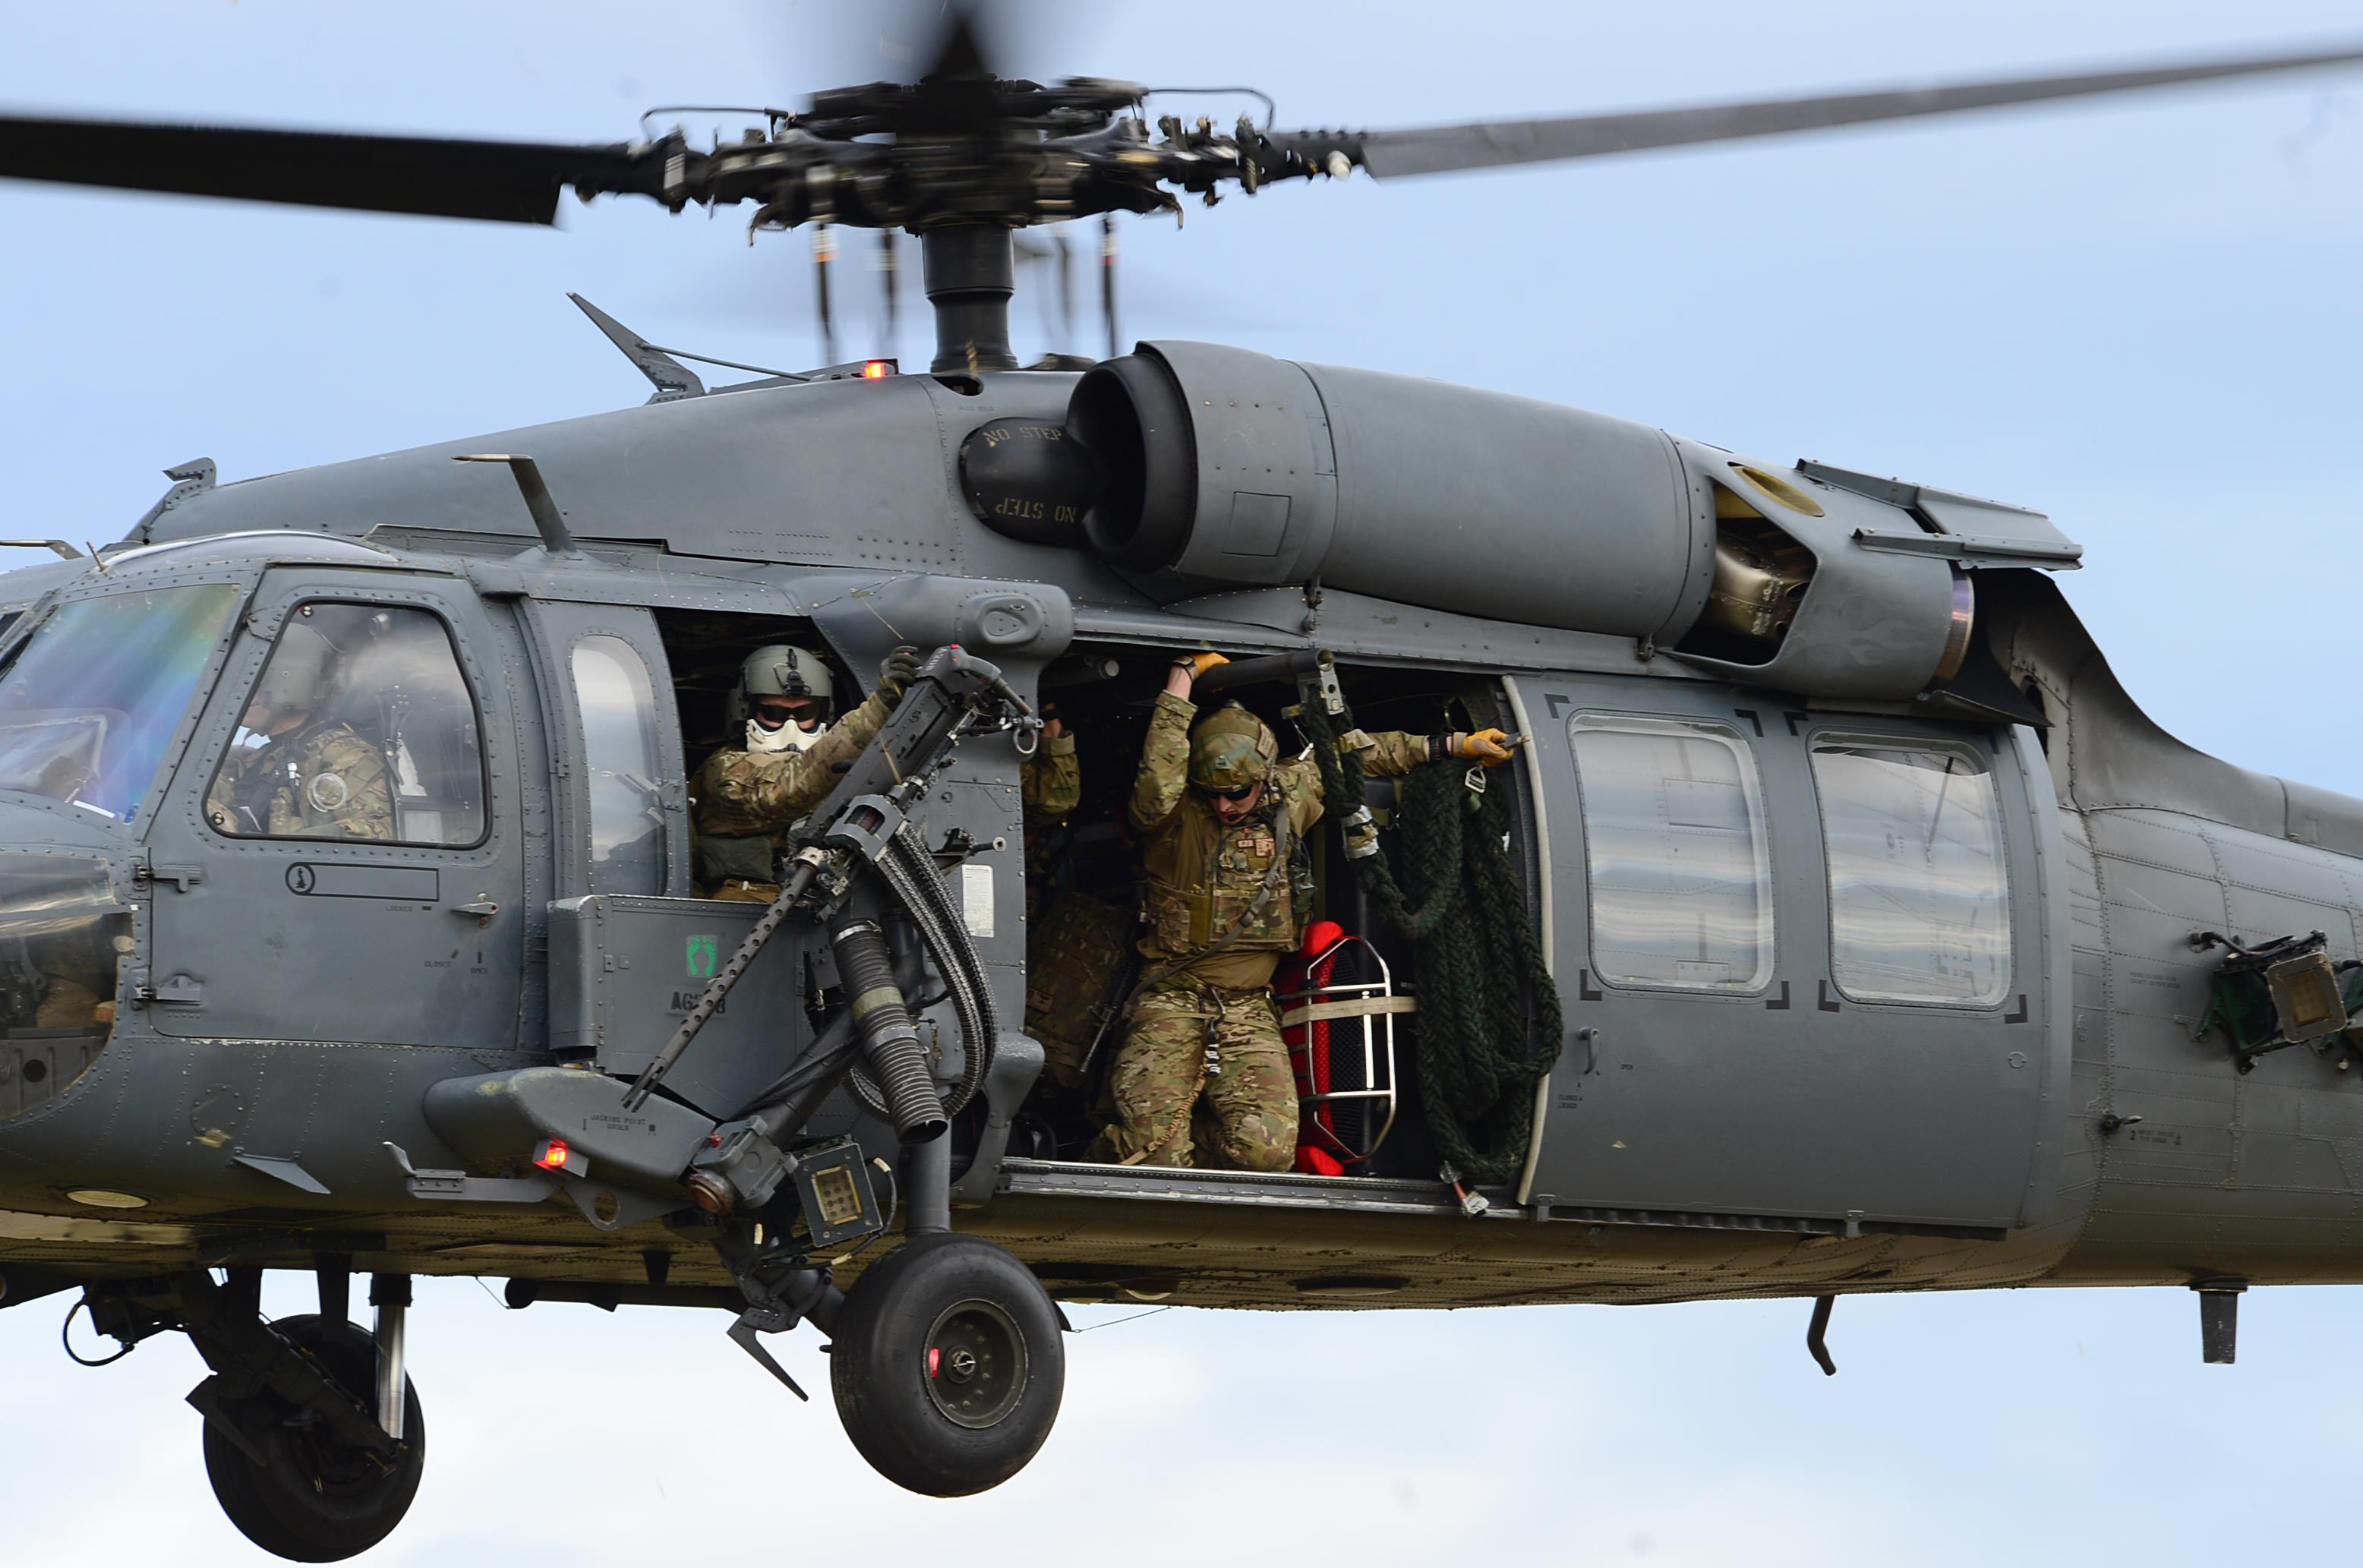 pj helicopters with Photos on PhotoEssaySS in addition Pararescuemen moreover Kight Petrified Palm Wood besides Large Rc Huey Helicopter O6oSABkDKjEqXQWL817ef5ci5pJ8uc5 7CE6vtEwduS8I besides File 720th Special Tactics Group airmen jump 20071003.